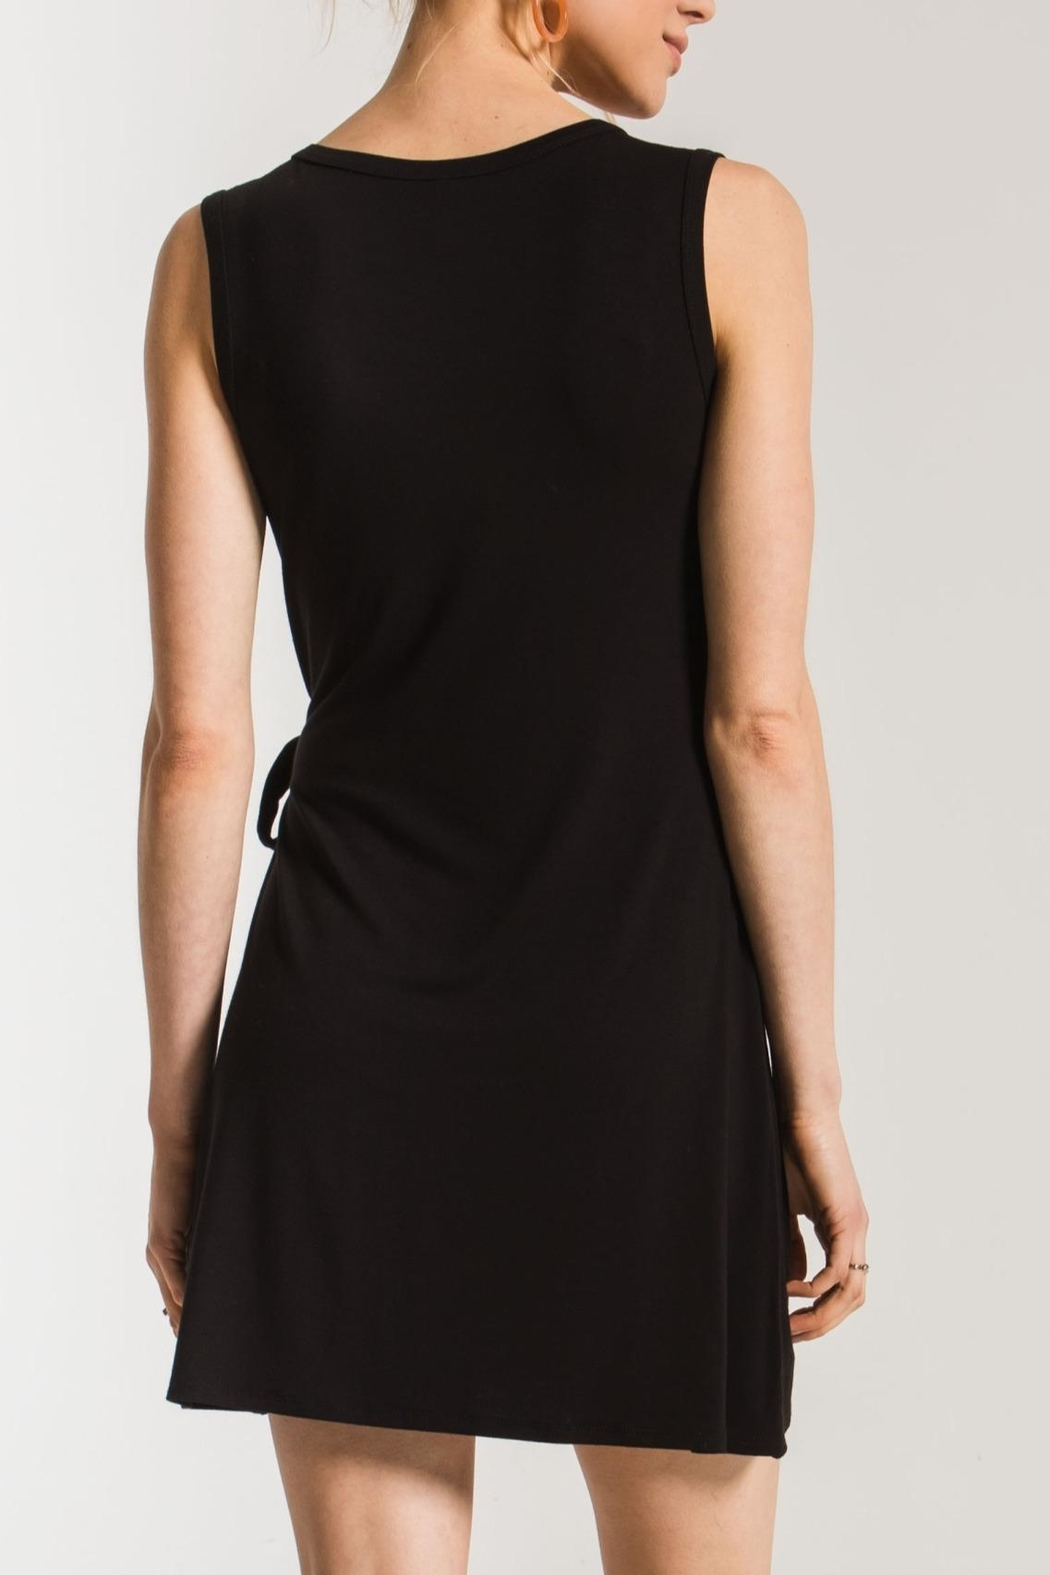 z supply The Side Tie Dress - Front Full Image